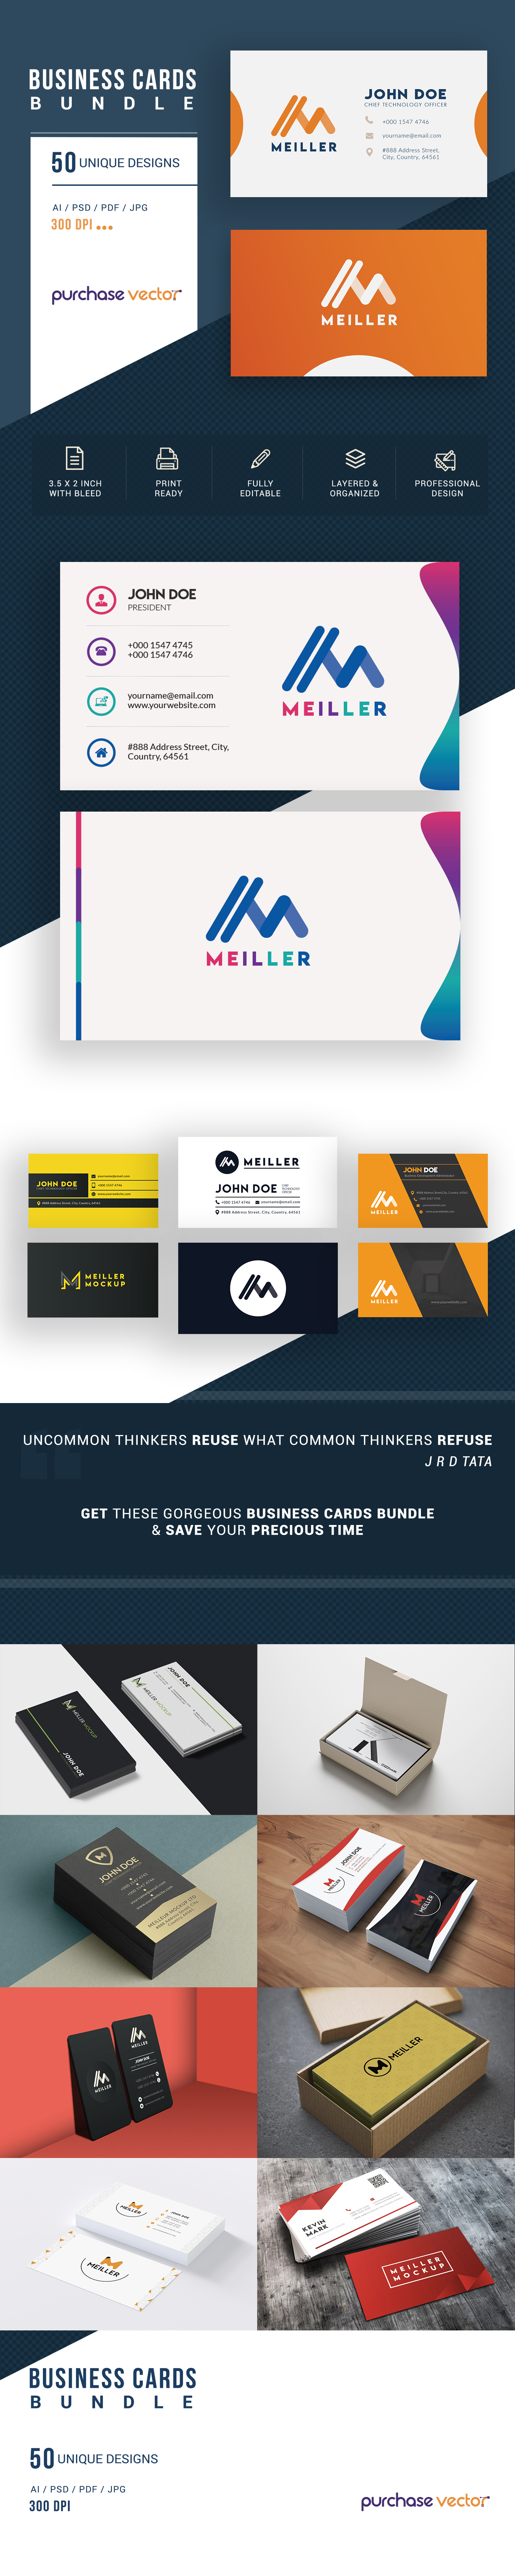 Professional Business Cards Templates example image 5